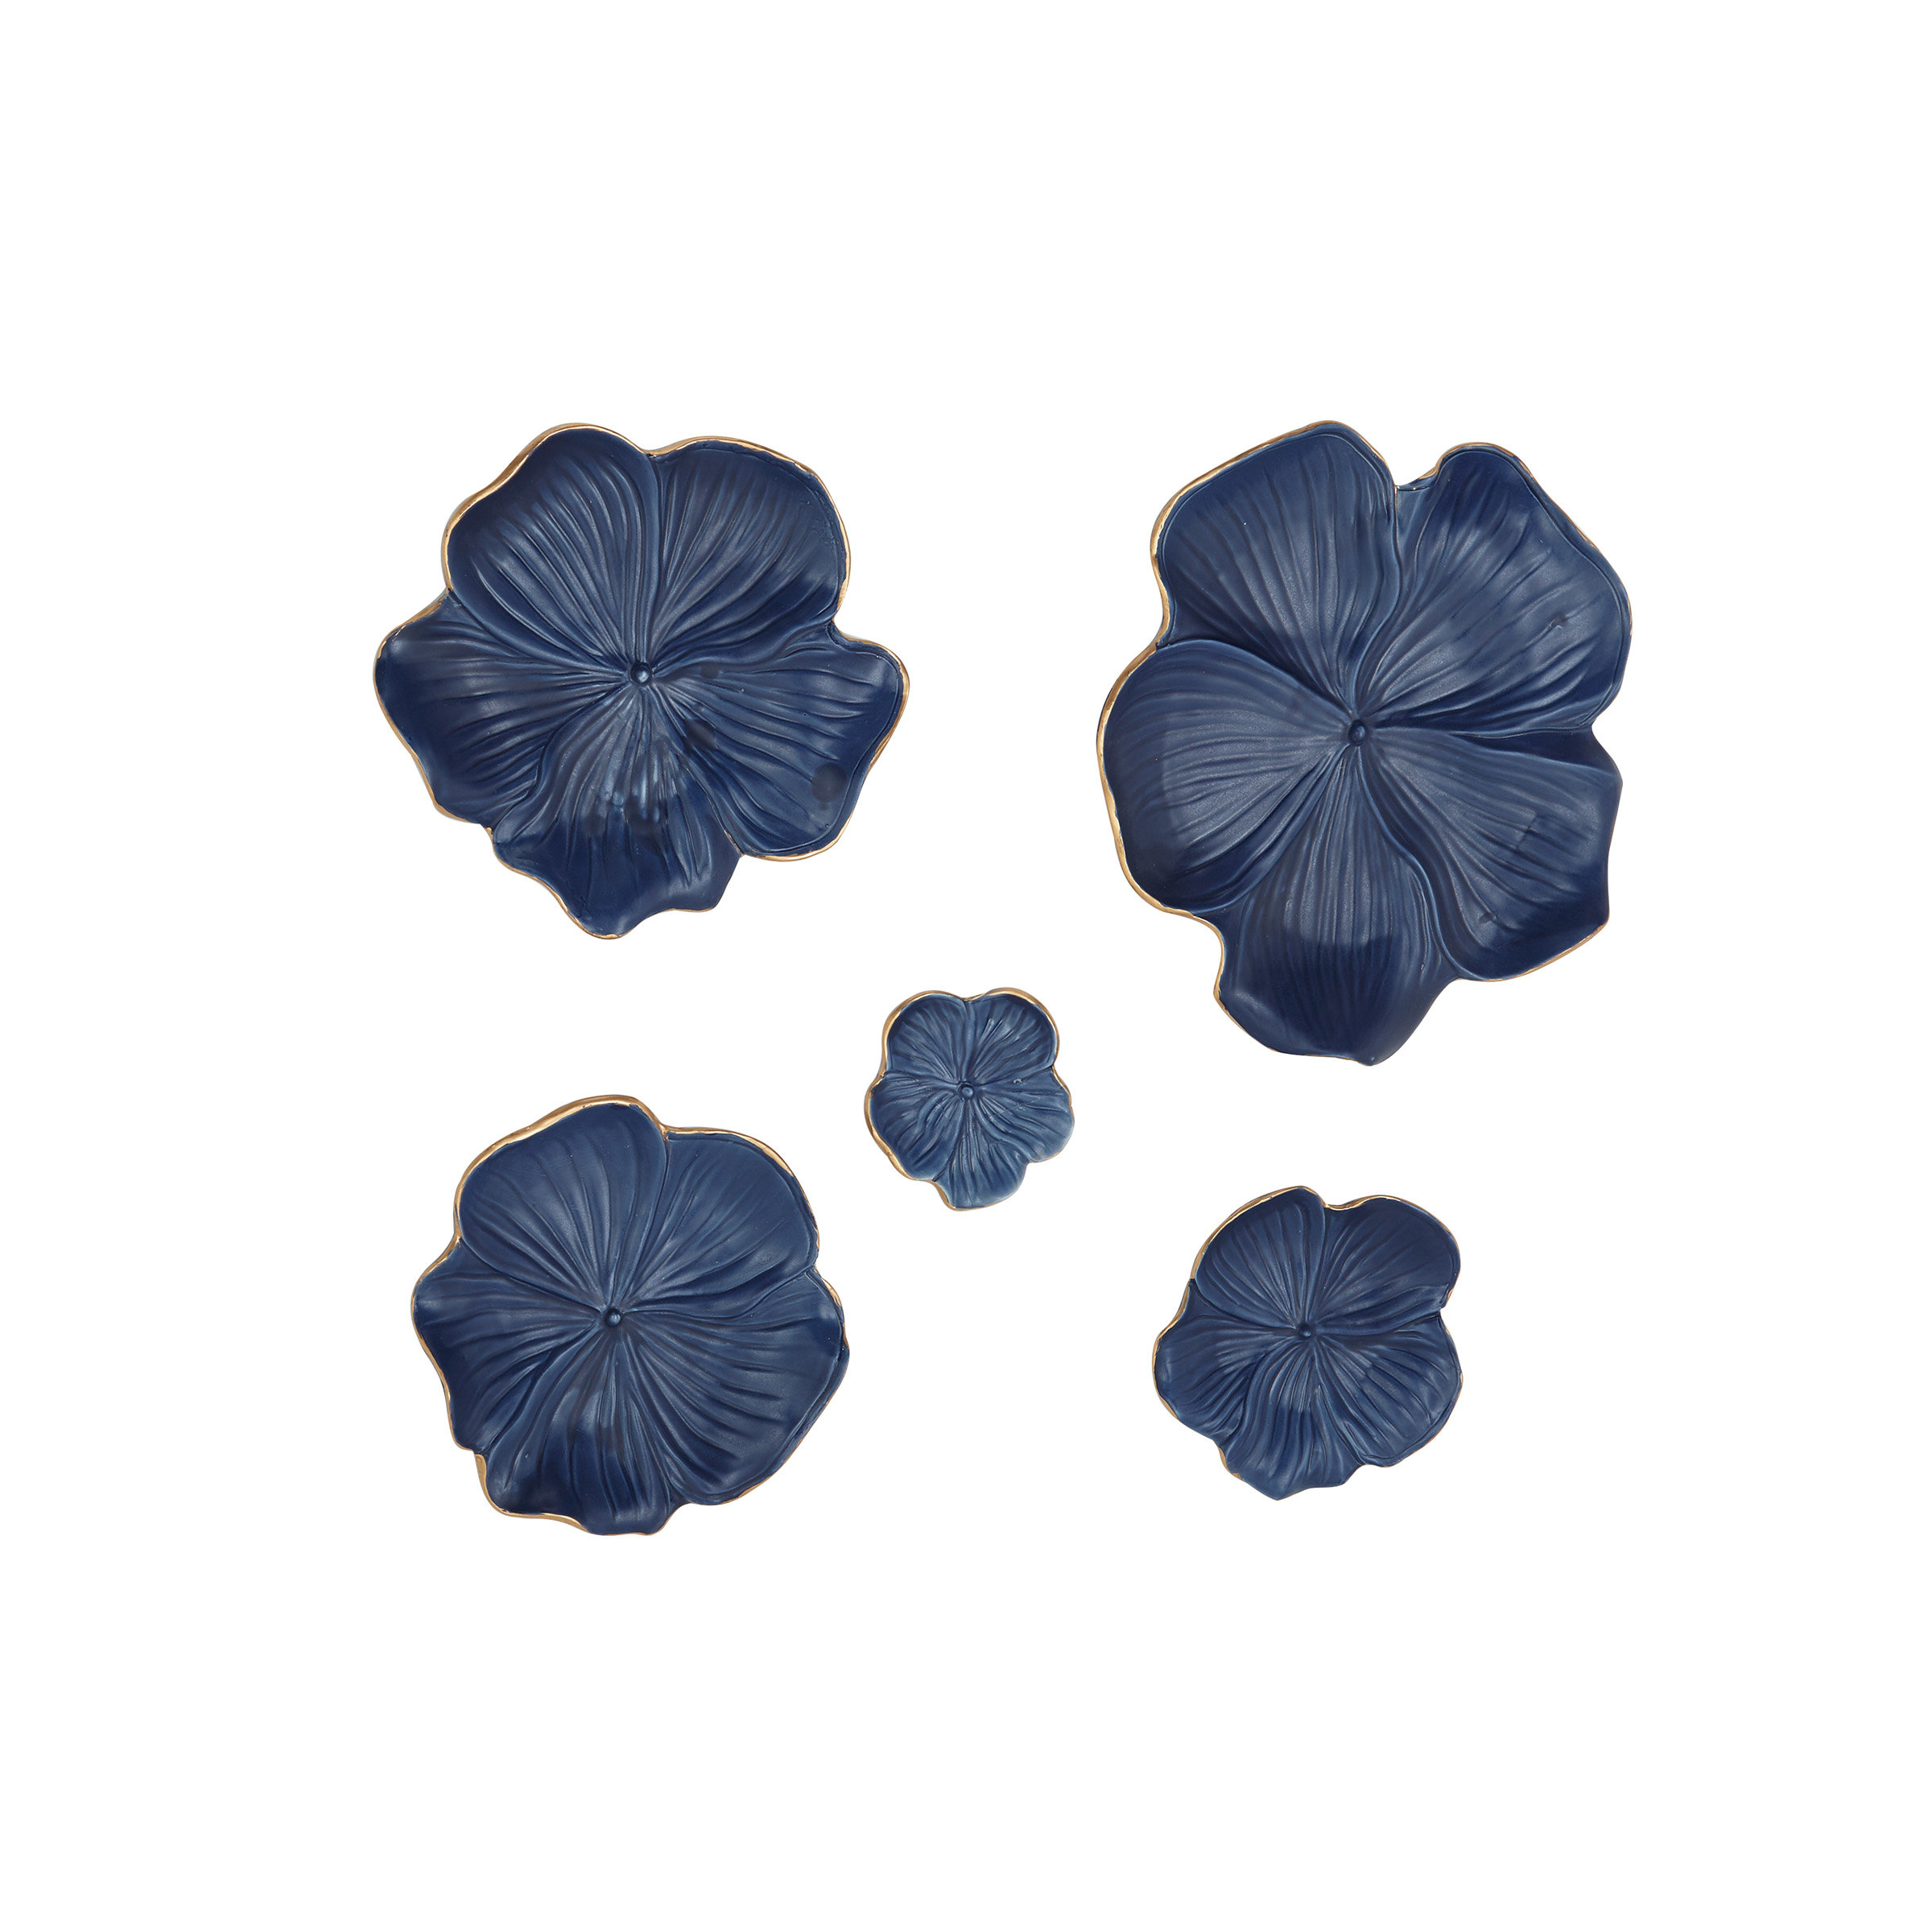 Bellefonte 5 Piece Ceramic Floral Wall Decor Set within Mariposa 9 Piece Wall Decor (Image 7 of 30)